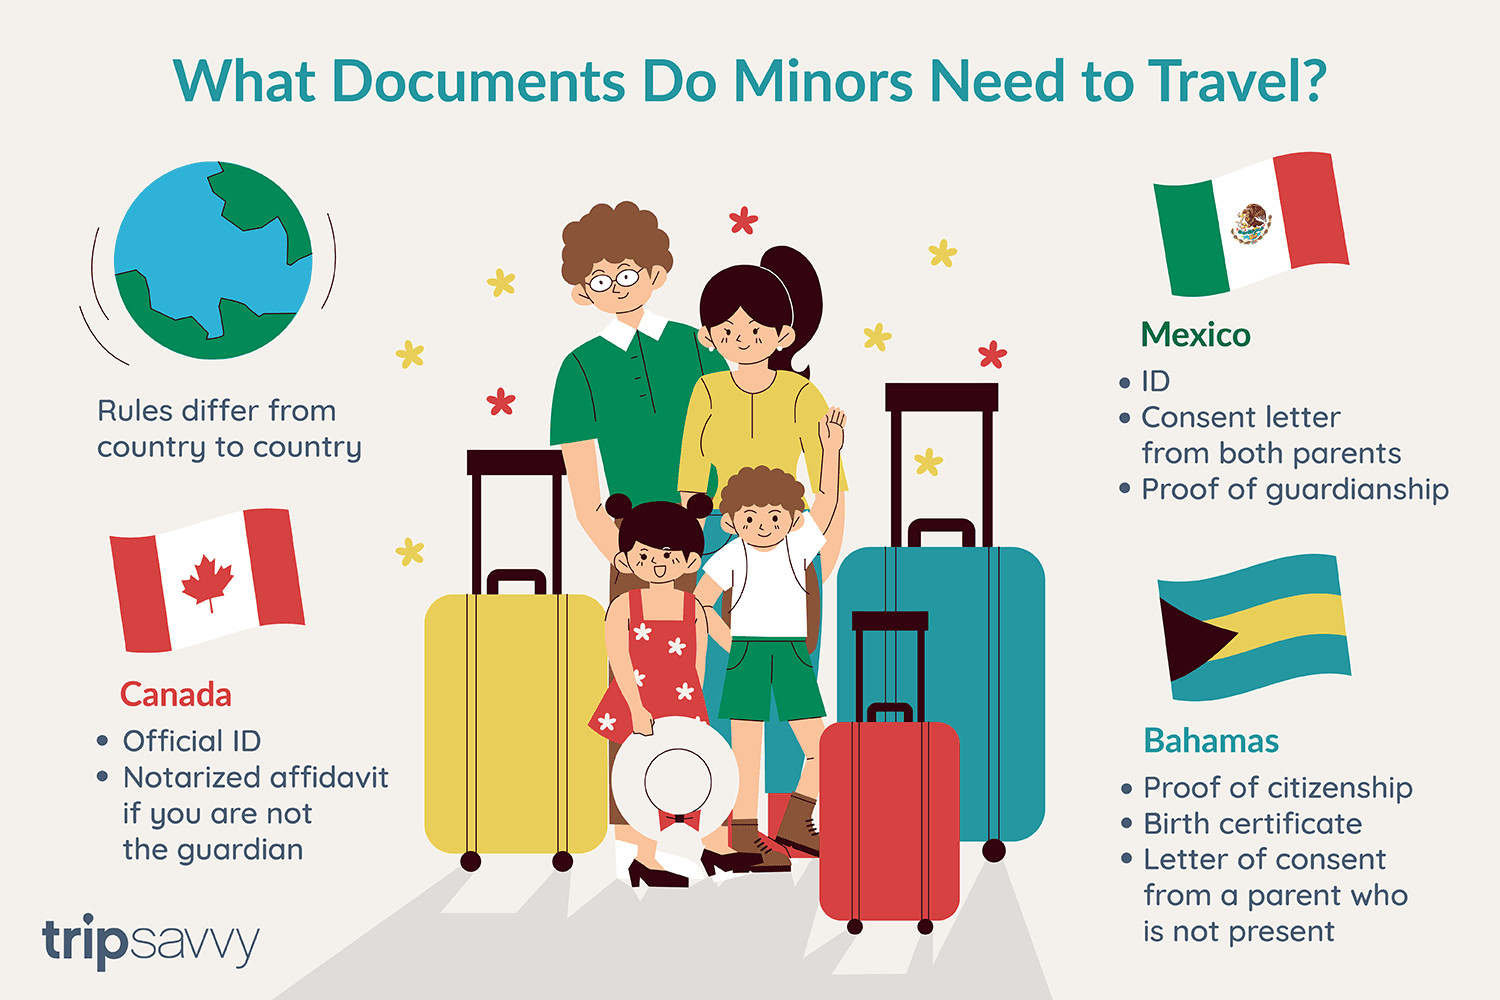 Artwork Proof Approval form New Required Documents for International Travel with Minors